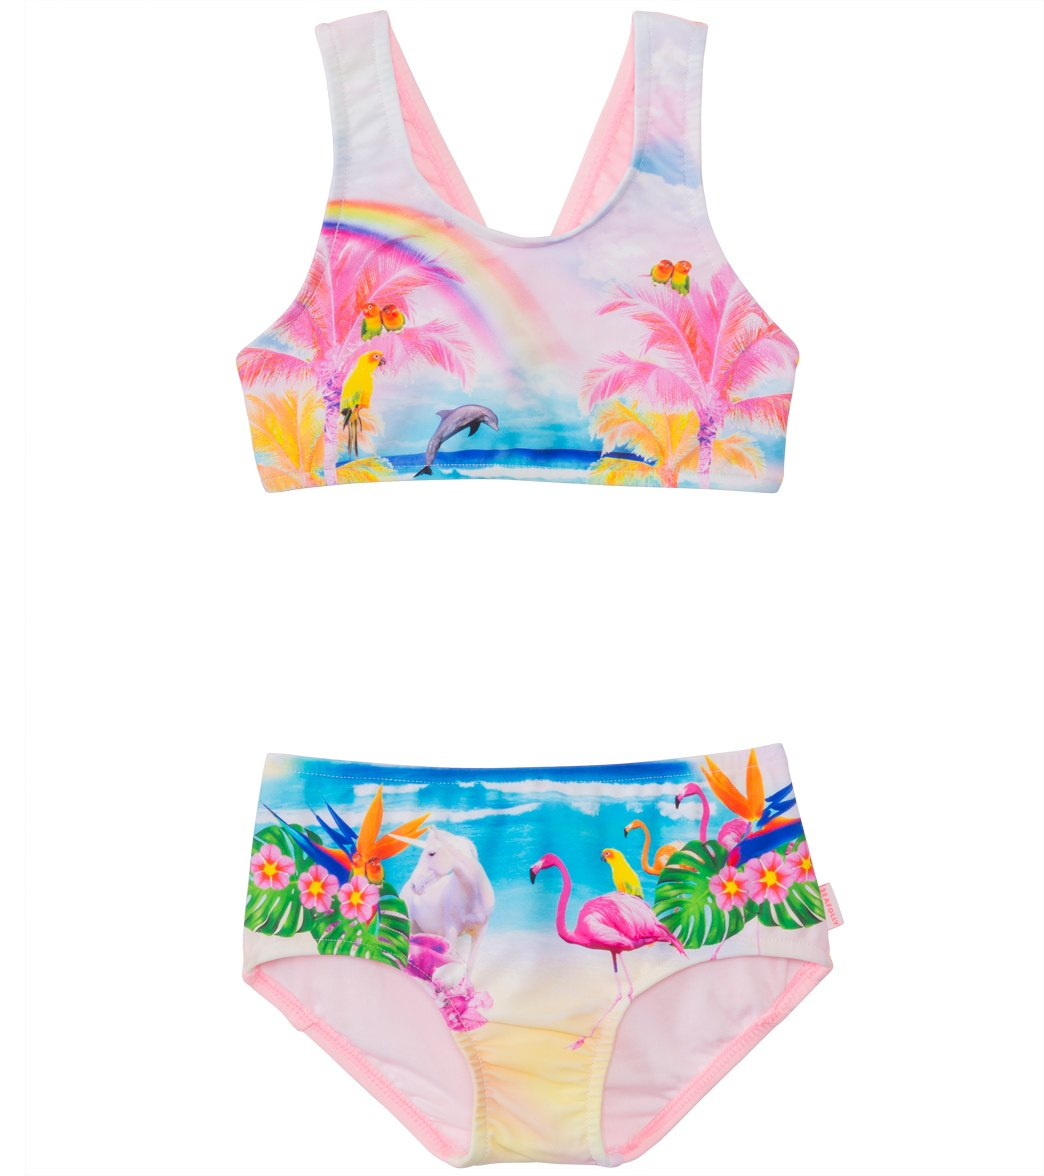 d54967cd663 Seafolly Girls  Rainbow Chaser Tankini Two Piece (2yrs-6yrs) at  SwimOutlet.com - Free Shipping